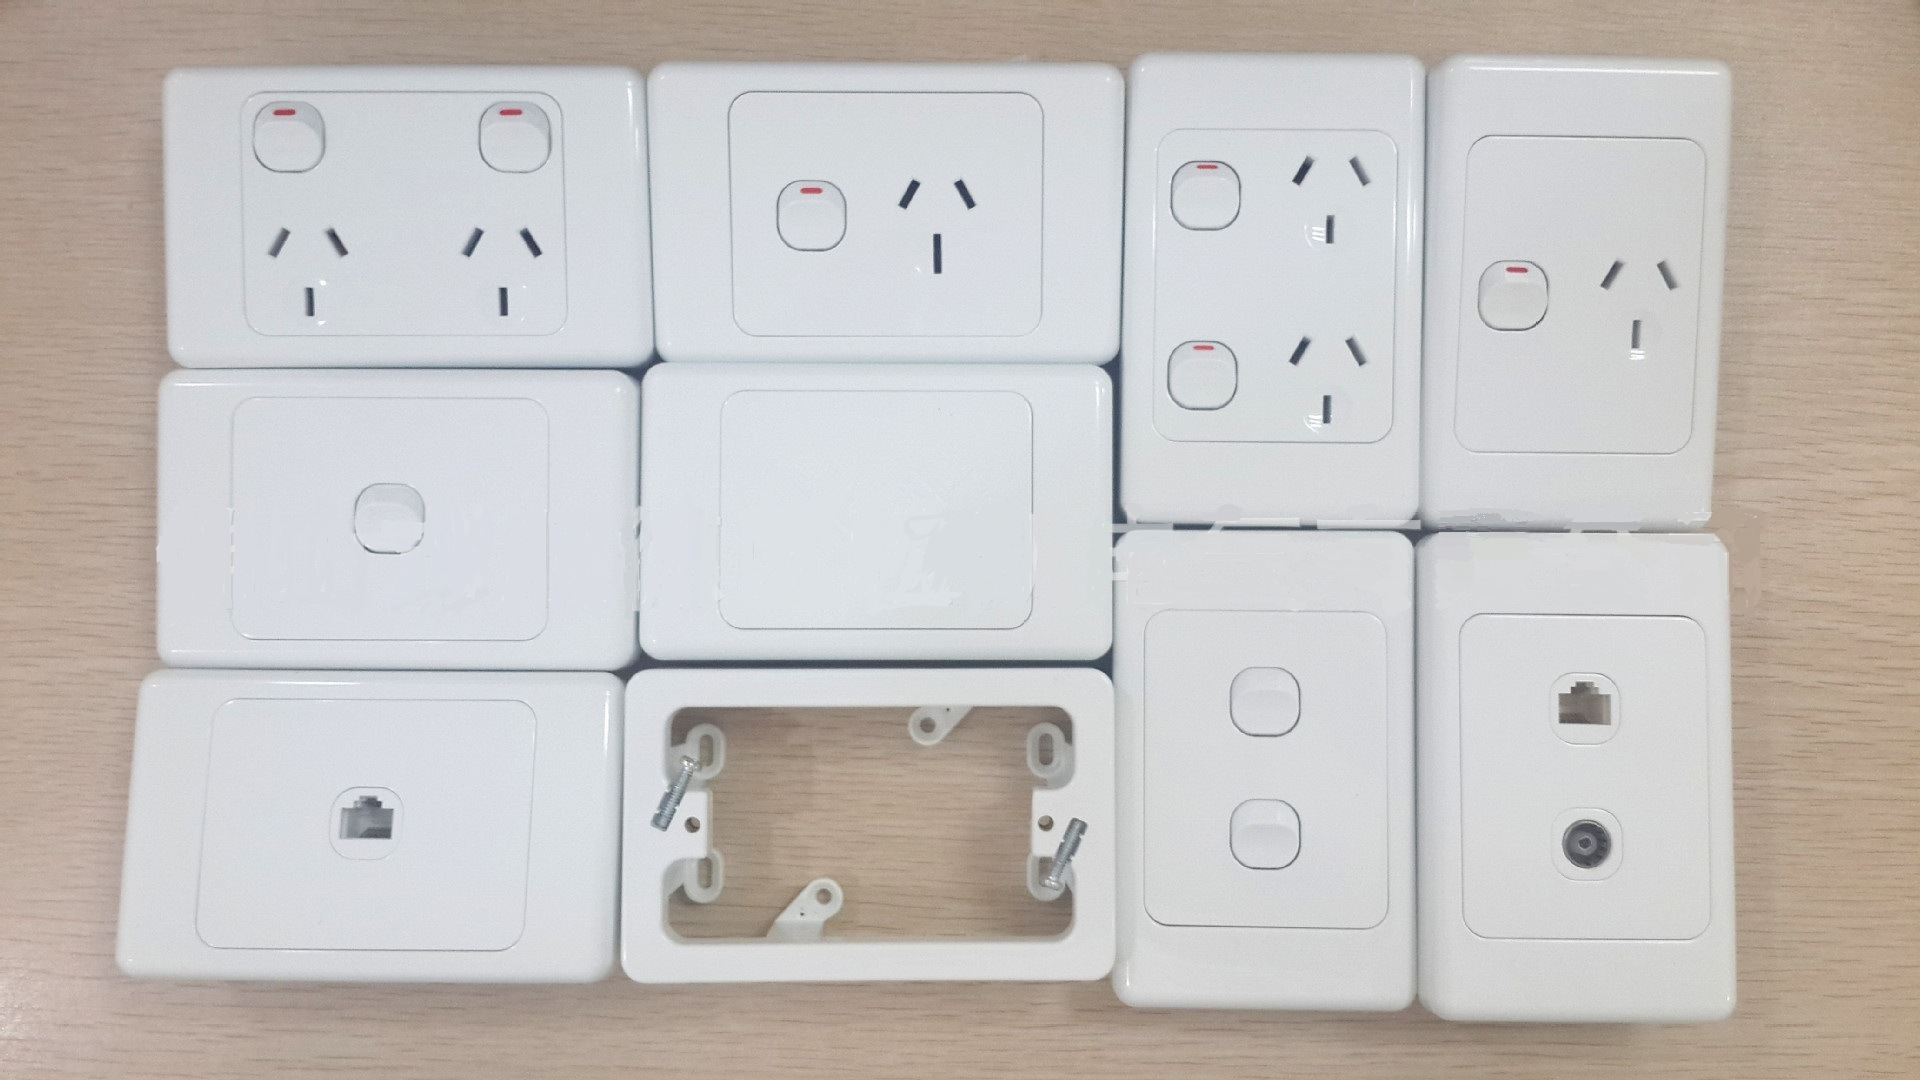 China Factory Low Price Australia Saa Standard Ps2019 Wall Switch Australian Power Cord Male Plug Female Socket Electrical And